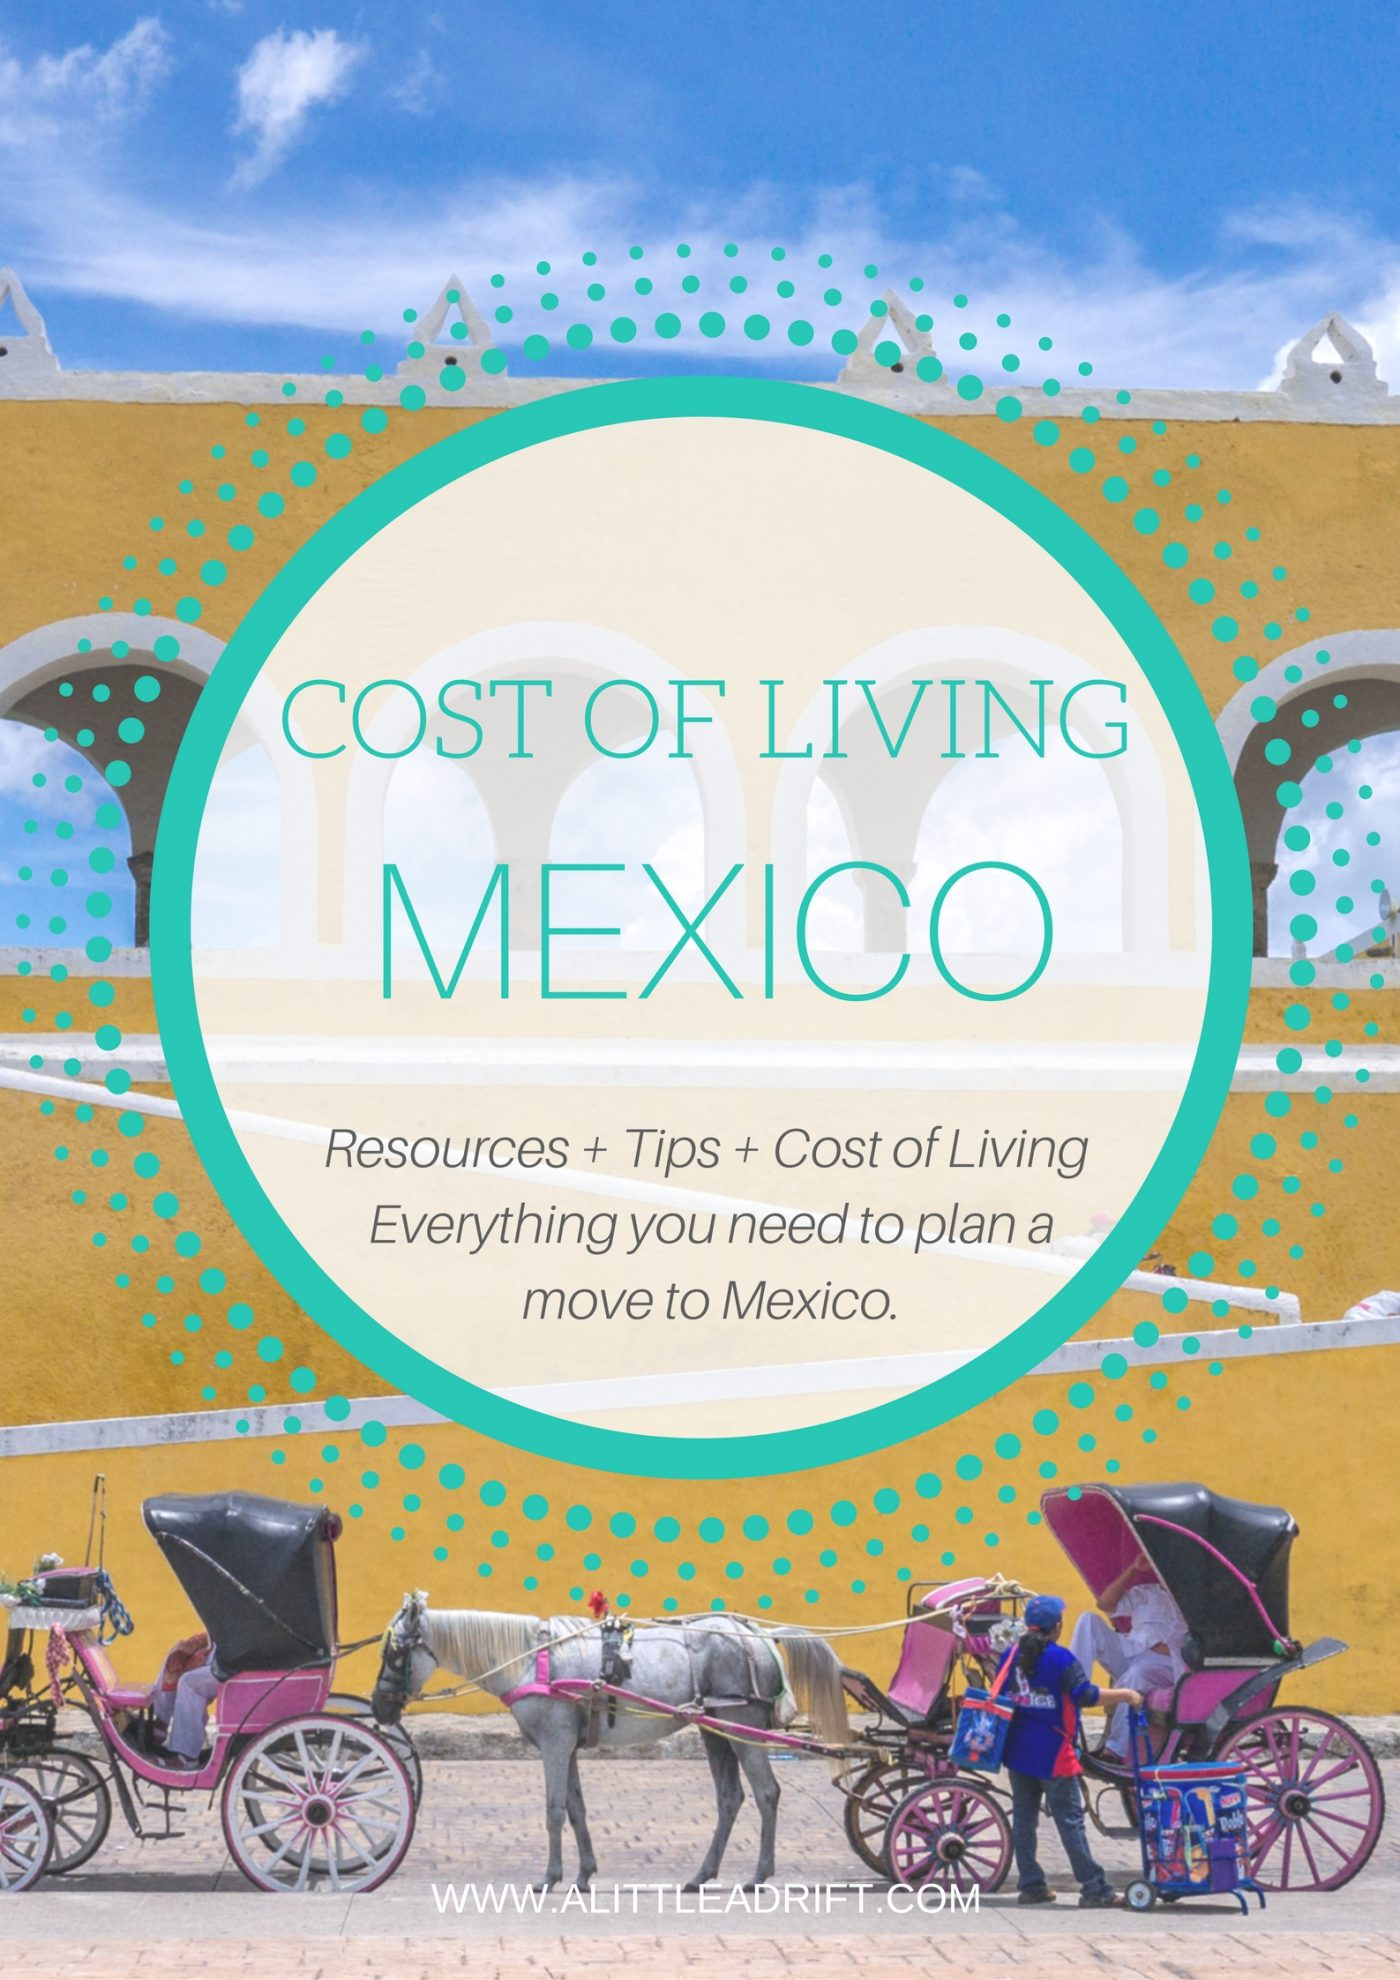 How Much Does It Cost To Live In A Mexican Beach Town 2020,Small Bathroom Floor Tiling Ideas